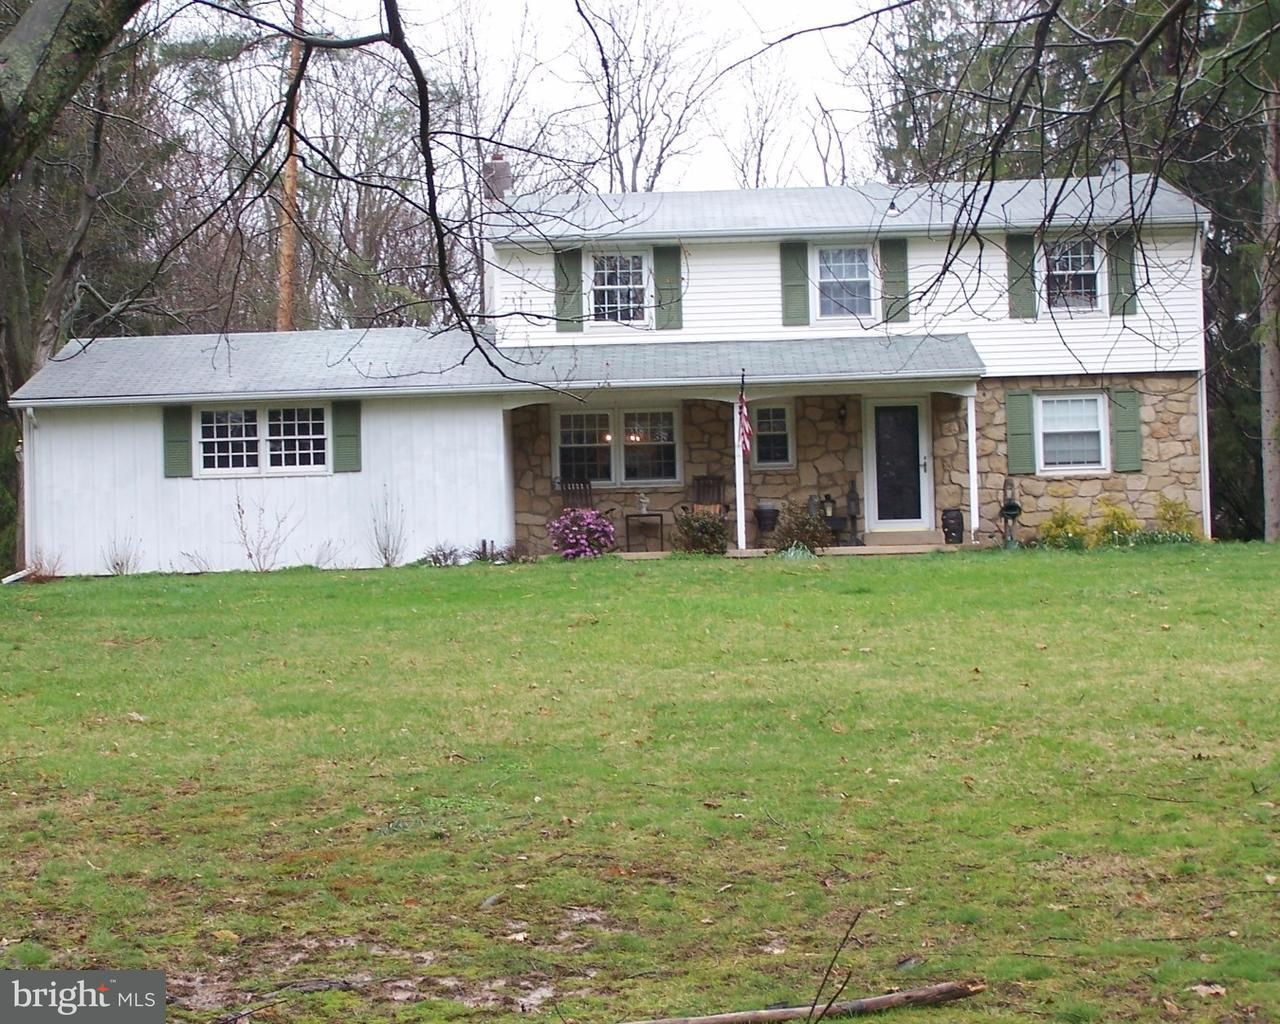 2803 CURTIS LN, LANSDALE - Listed at $1,995, LANSDALE